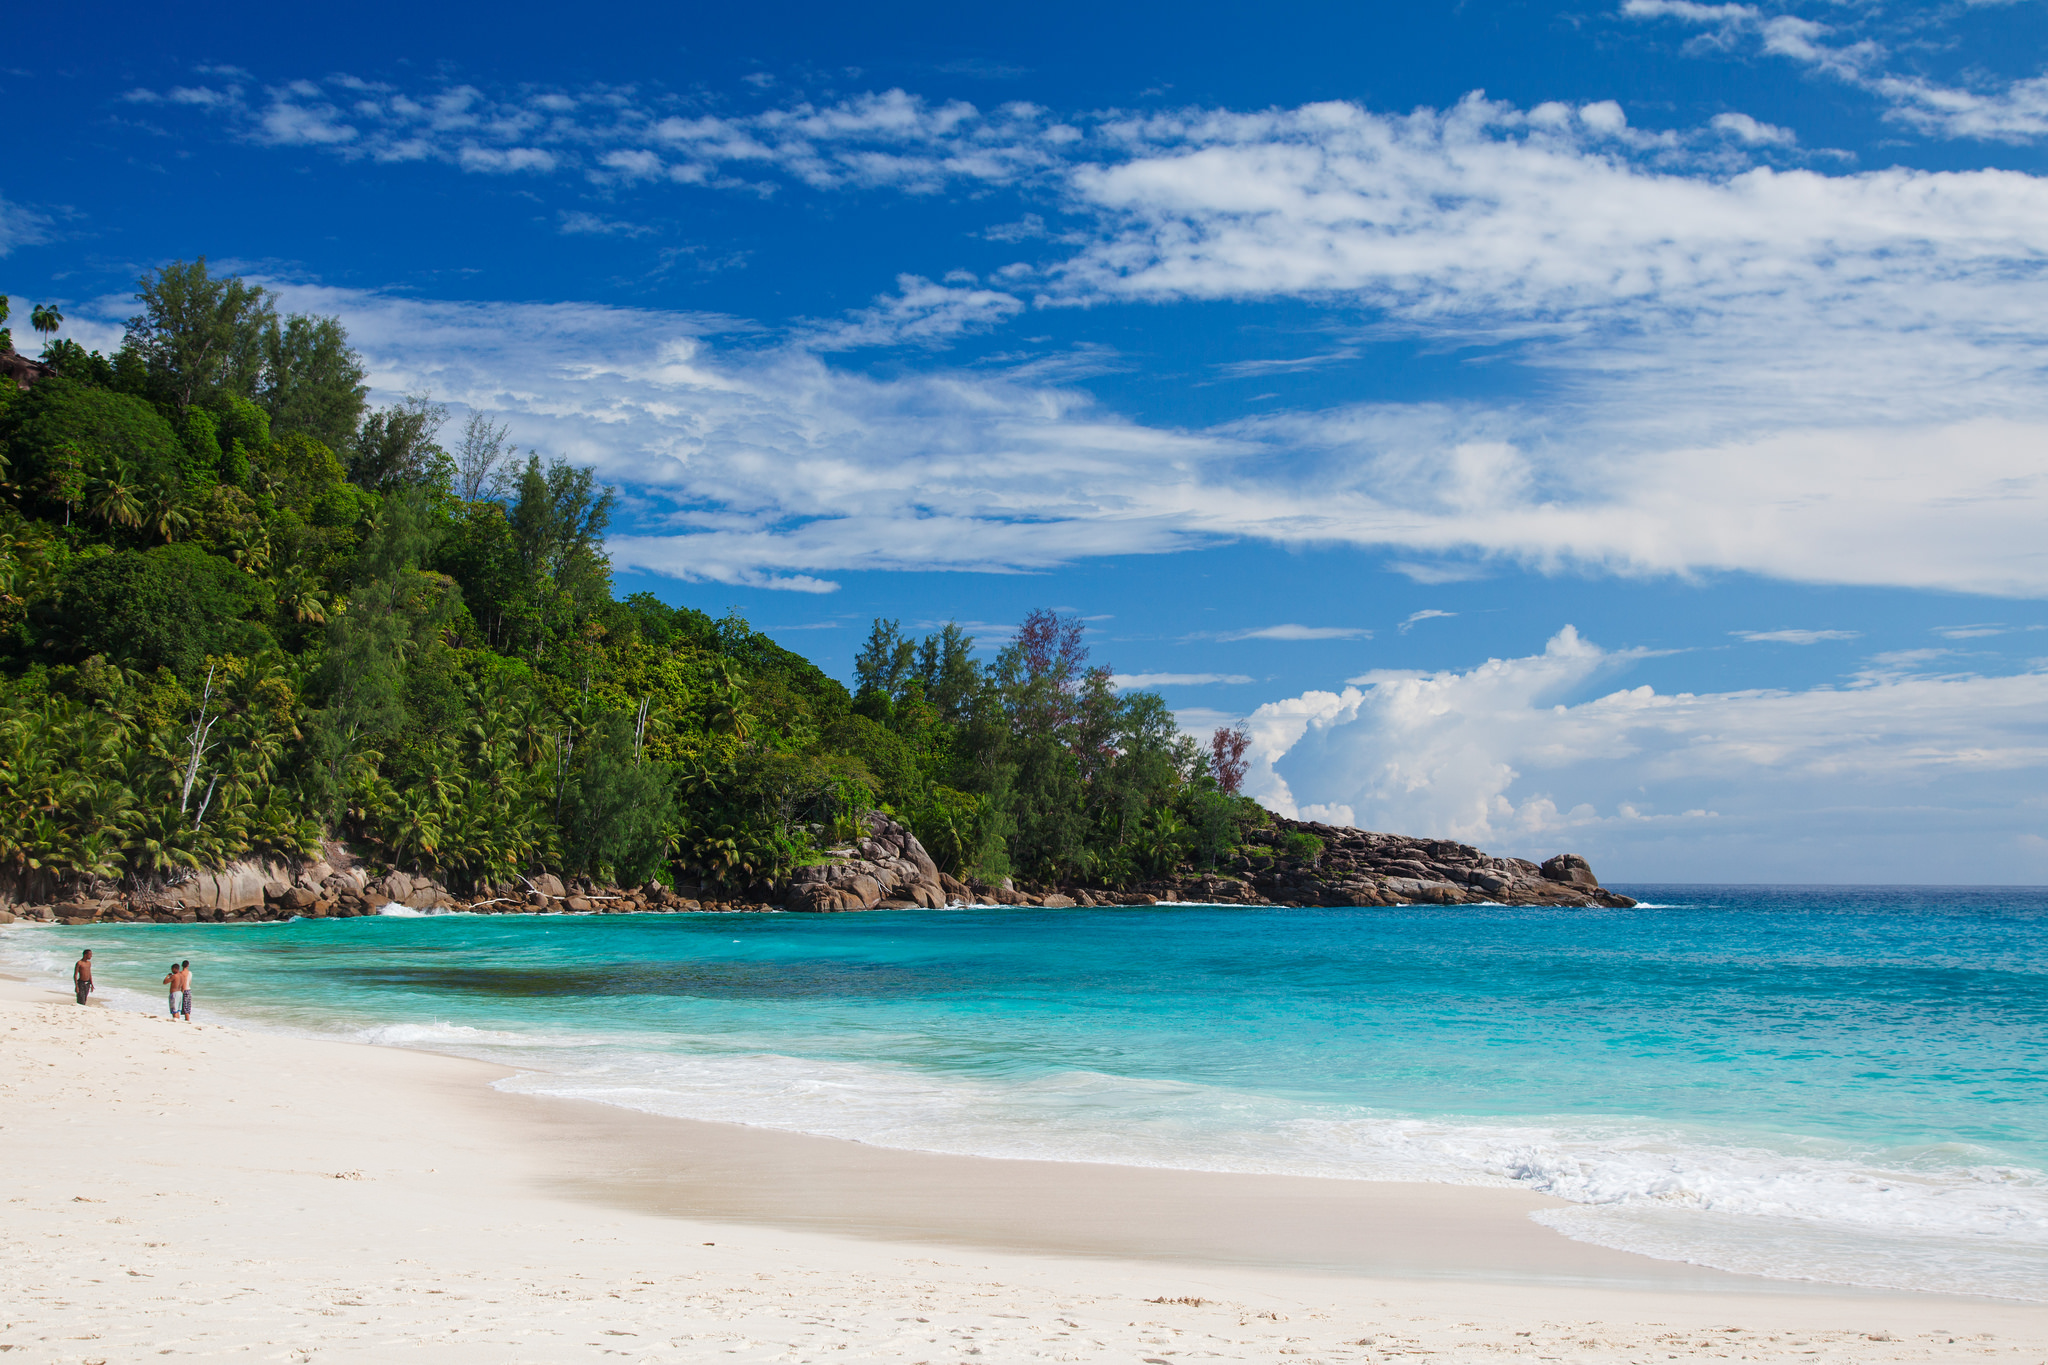 Newly married Indian couples prefer Seychelles for their honeymoon destination. Photo courtesy: flickr.com